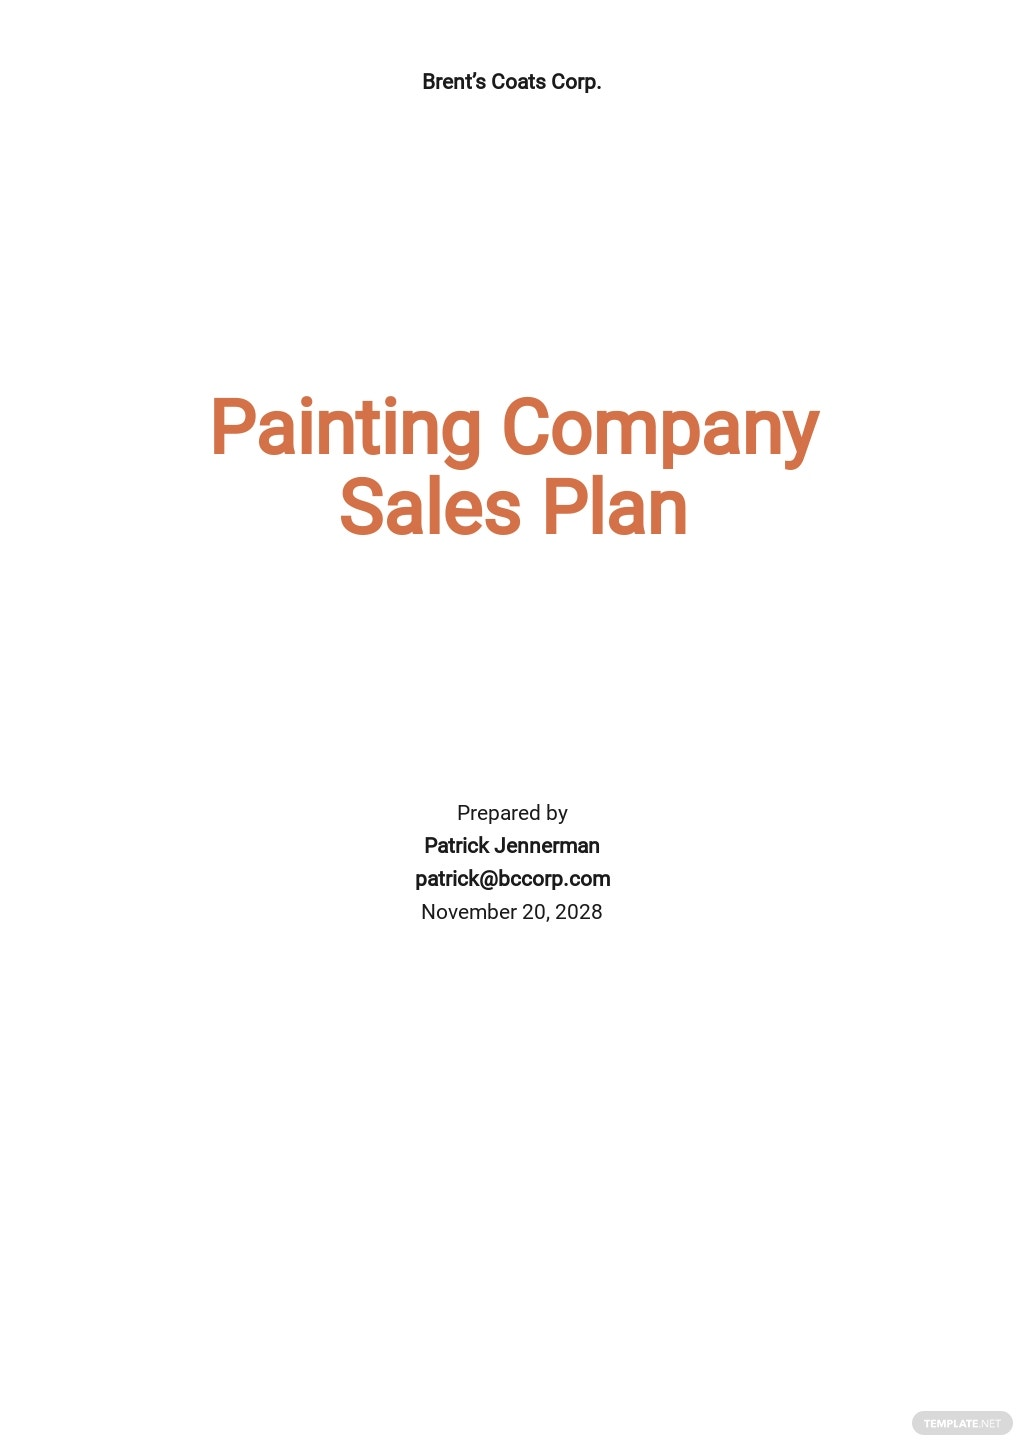 Painting Company Sales Plan Template